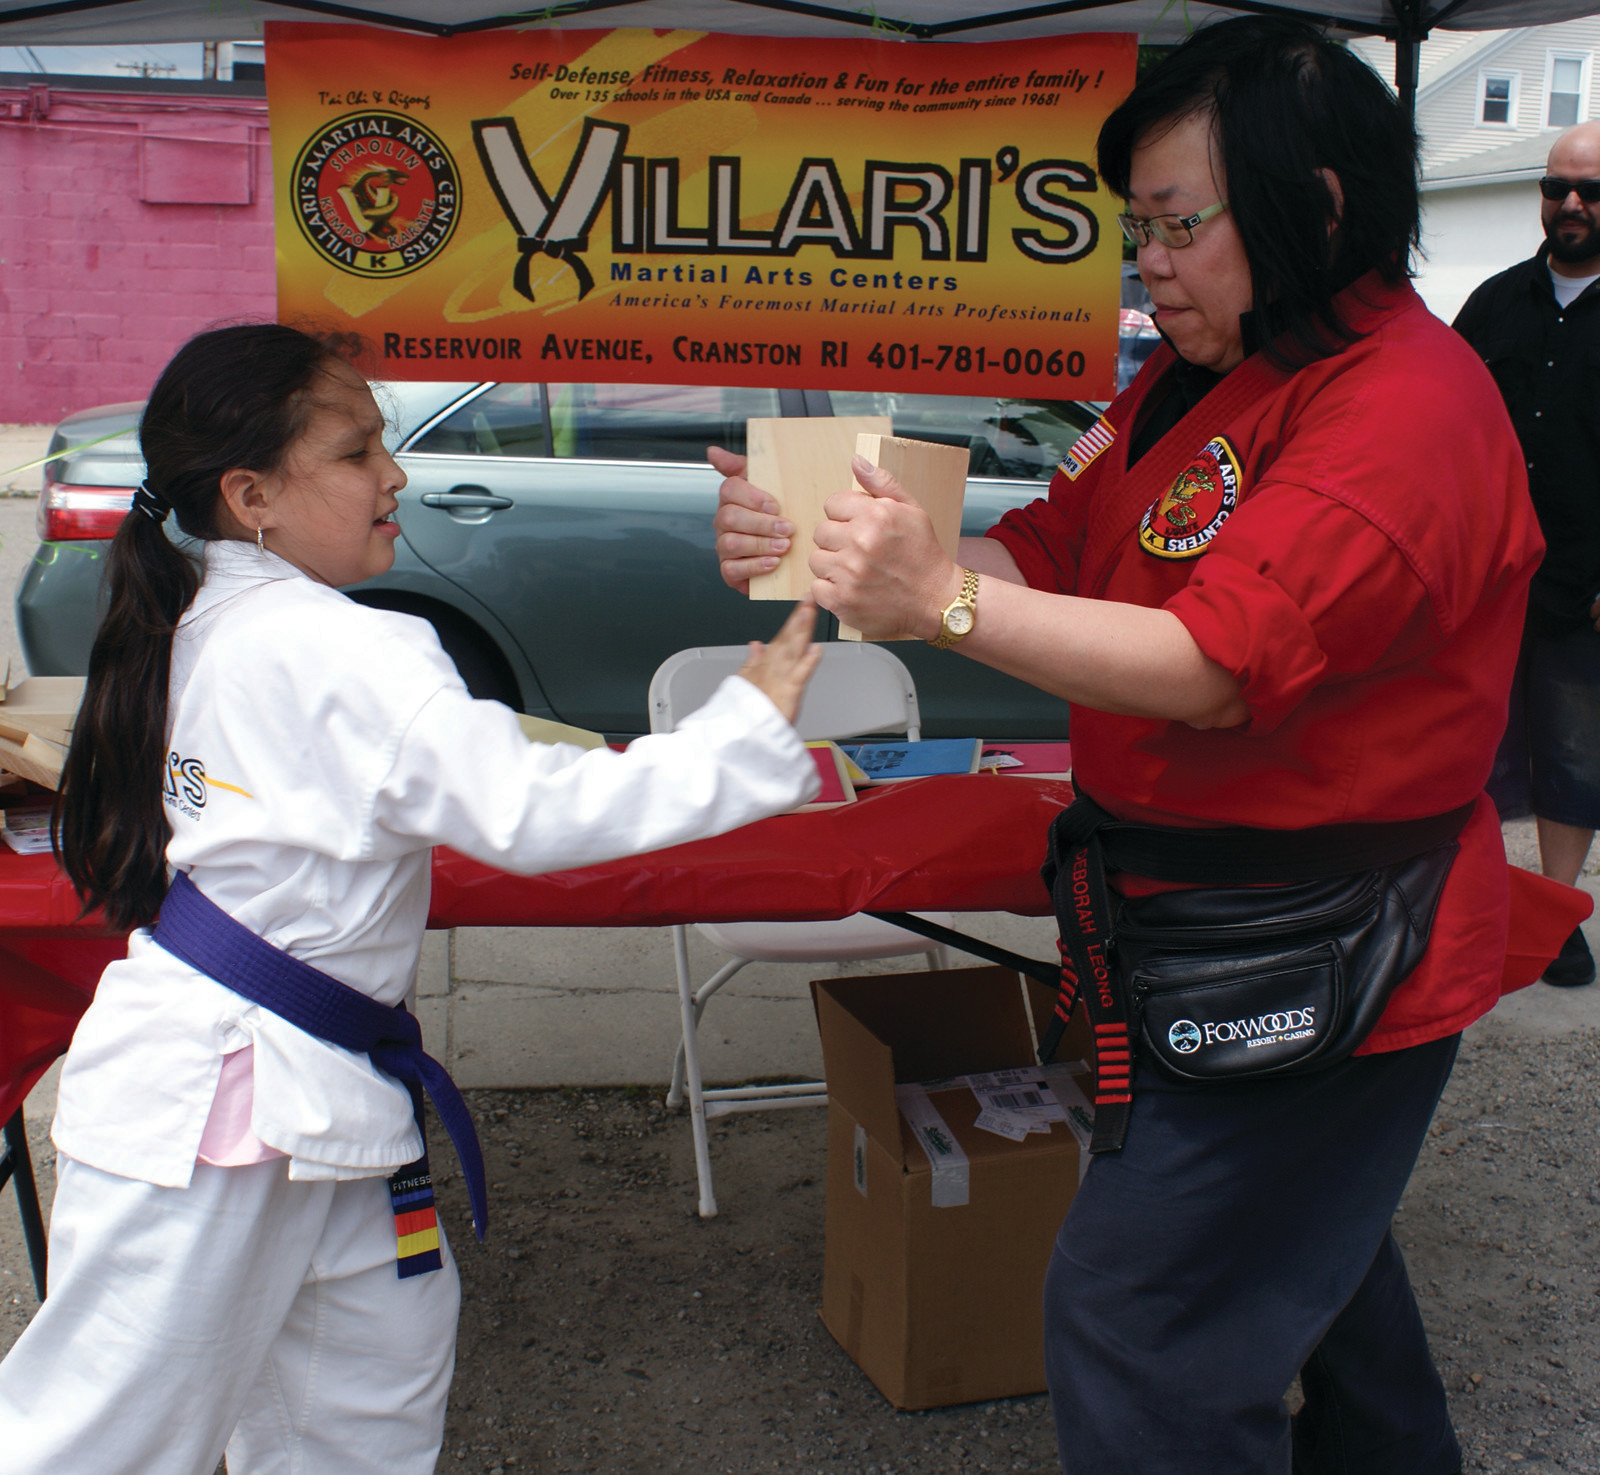 BREAKING BOARDS: One of the many attractions at Family Fun Day at the New England Slush Company was the booth provided by Villari's Martial Arts Centers, located on Reservoir Ave. Pictured is Purple Belt, Eilanna Arce, age 7, breaking a board in half which was held by Master Deborah Leong, a 6th Degree Black Belt.